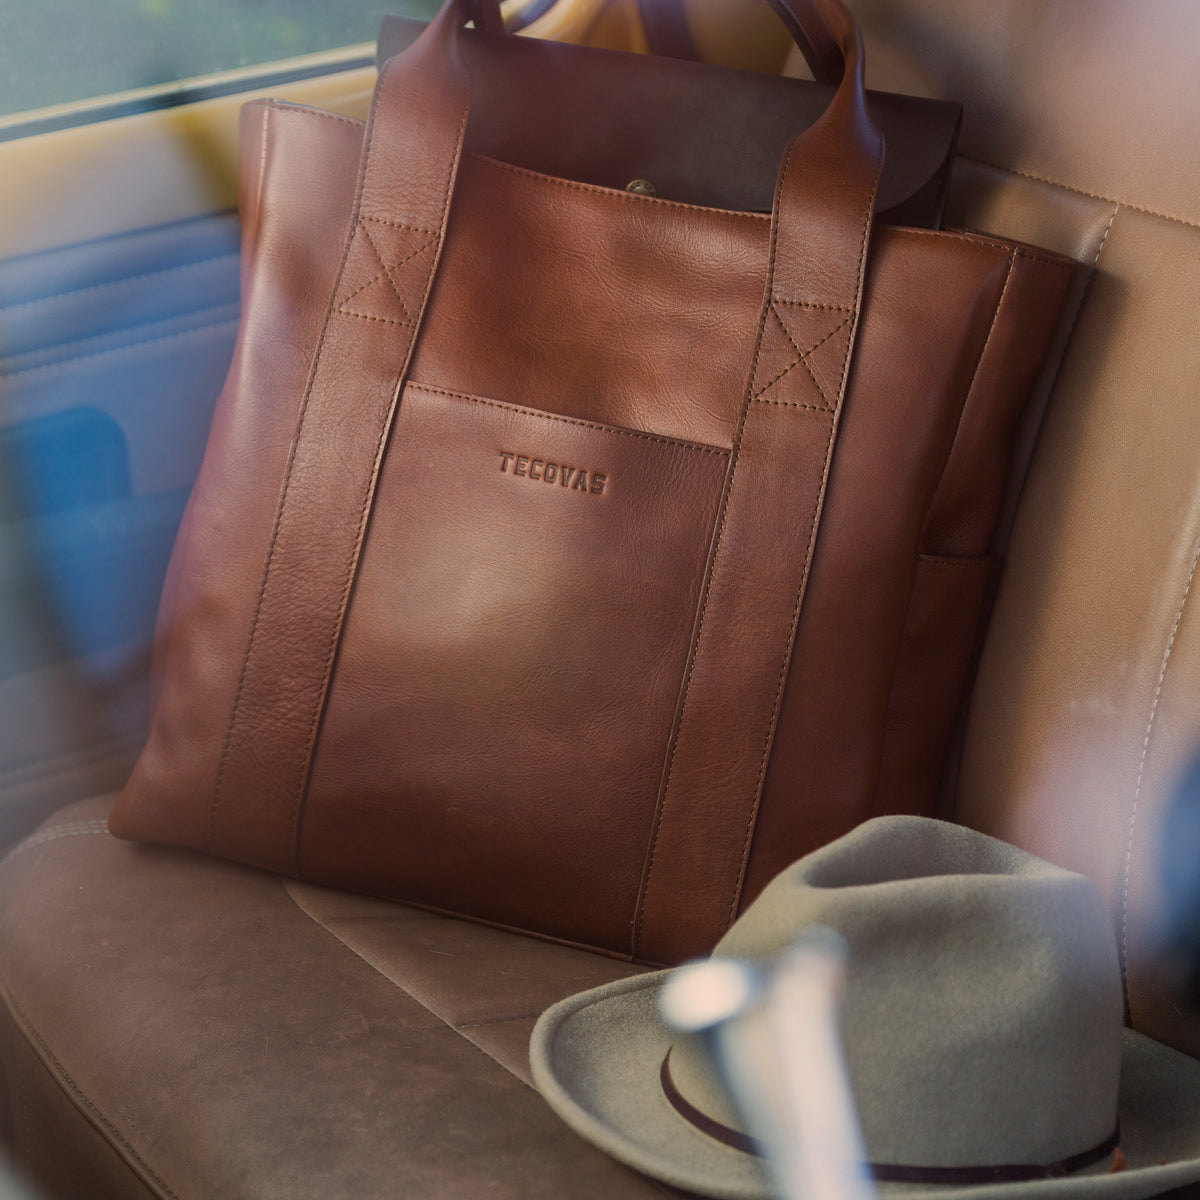 Premium Leather Tote Bags For Any